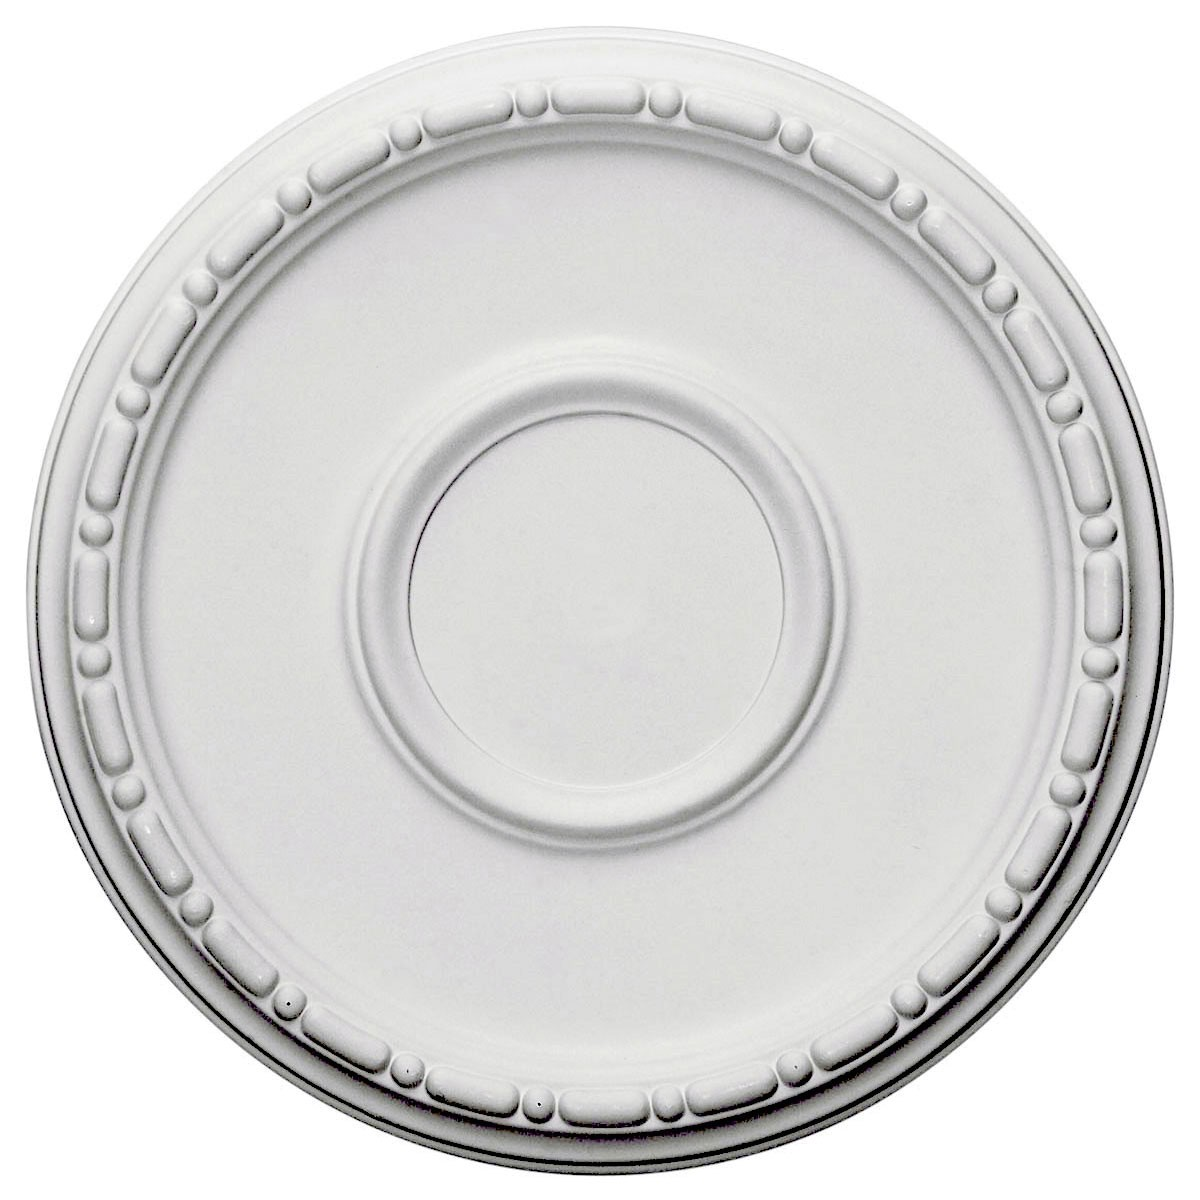 "EM-CM16MD - 16 1/2""OD x 1 1/2""P Medea Ceiling Medallion (Fits Canopies up to 5 1/2"")"